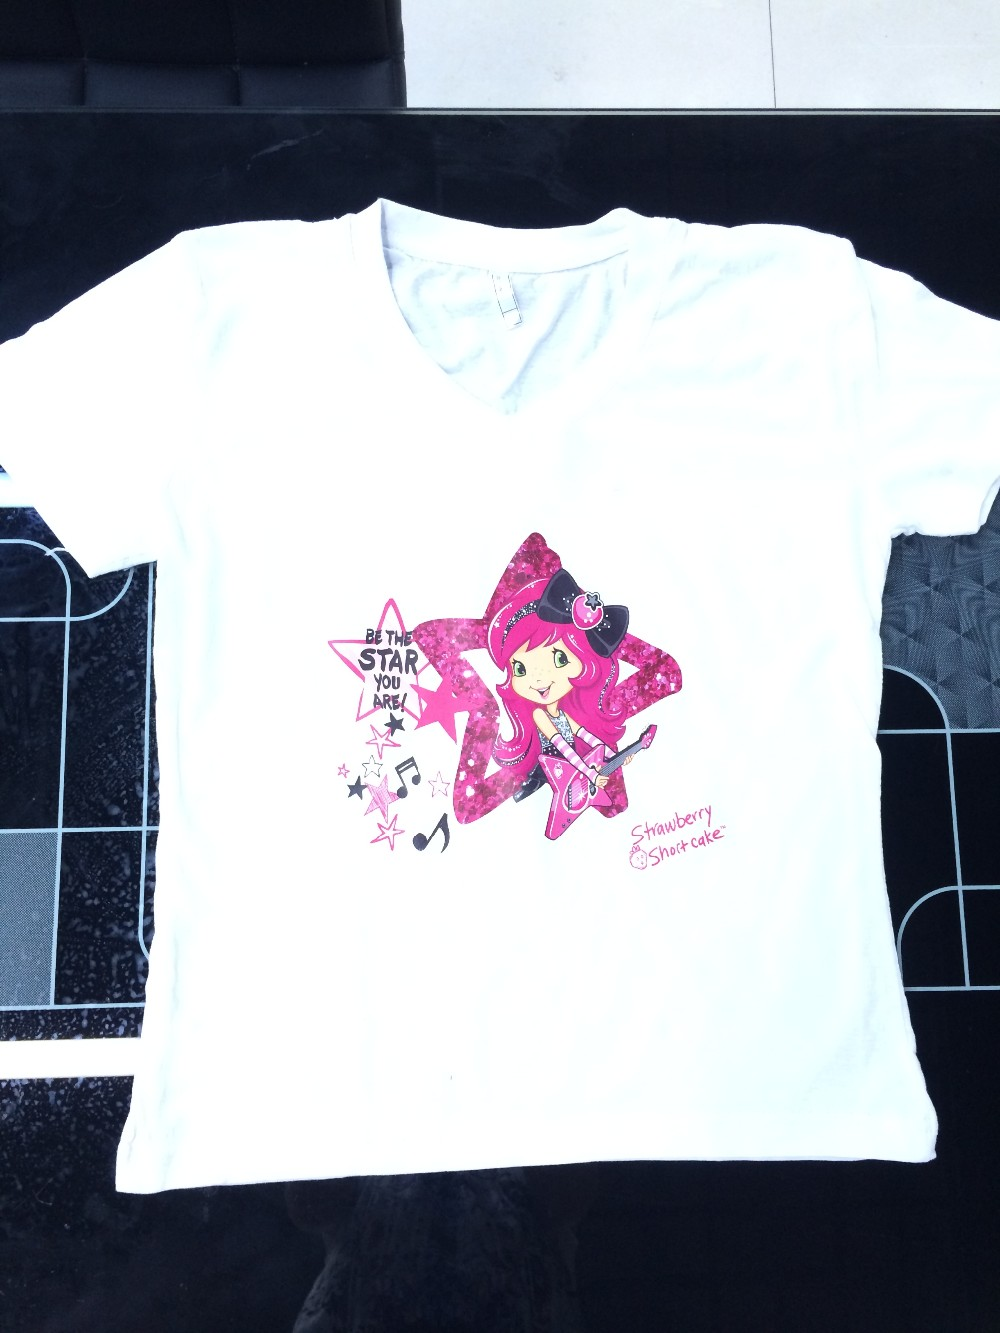 Wholesale Glitter Iron Transfers For T Shirts Buy Iron